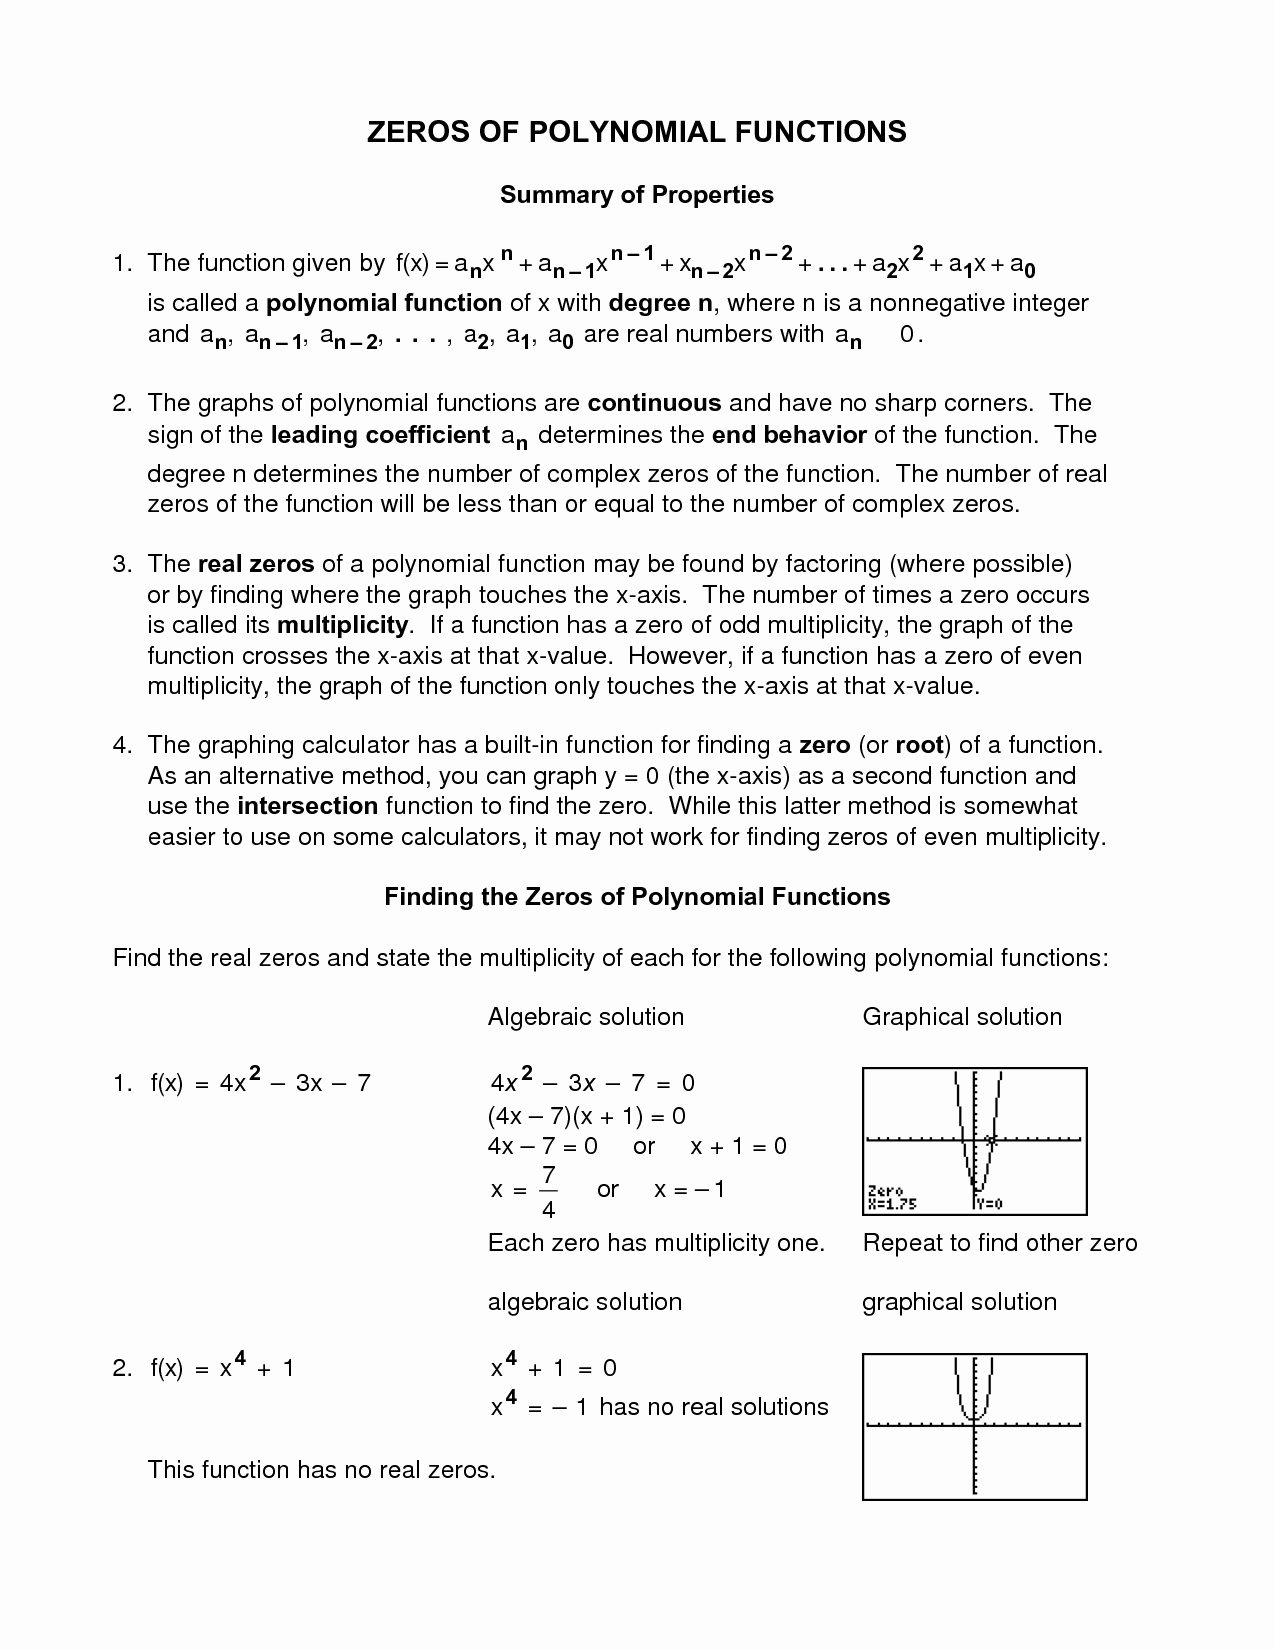 Families Of Functions Worksheet Unique Worksheet 2 5 Zeros Polynomial Functions